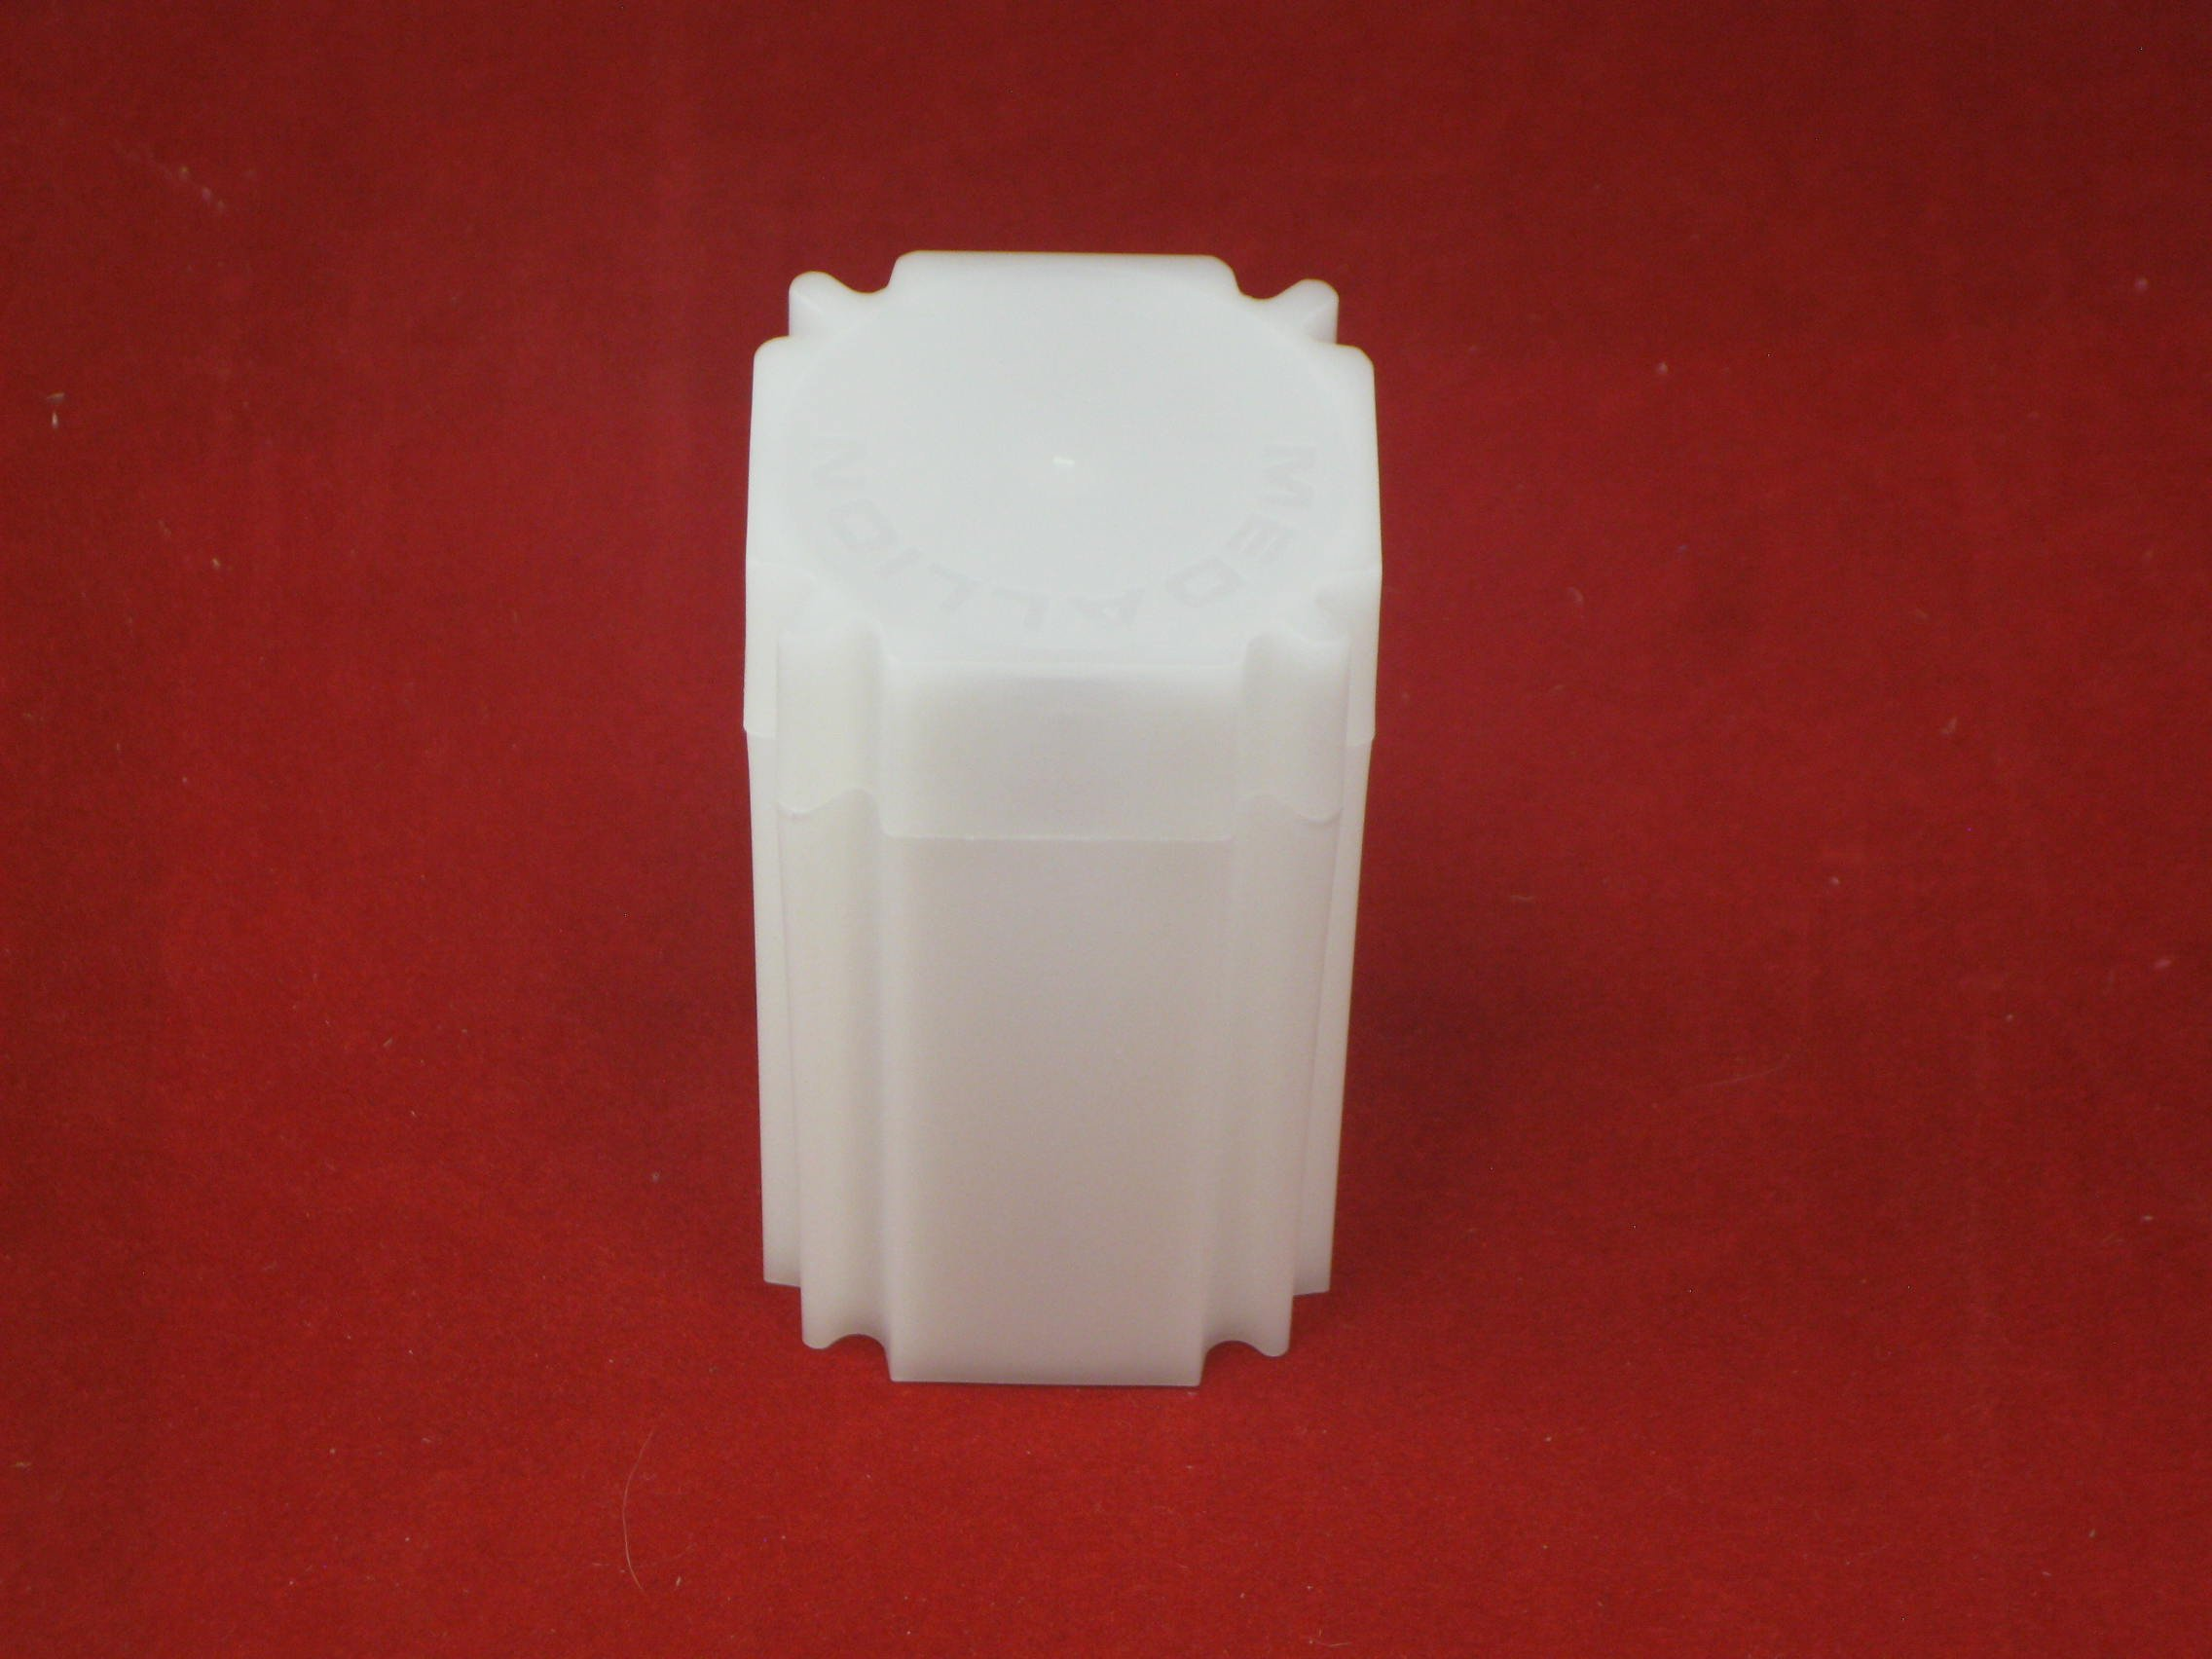 (100) Coinsafe Brand Square White Plastic (Large Dollar) Size Coin Storage Tube Holders by CoinSafe